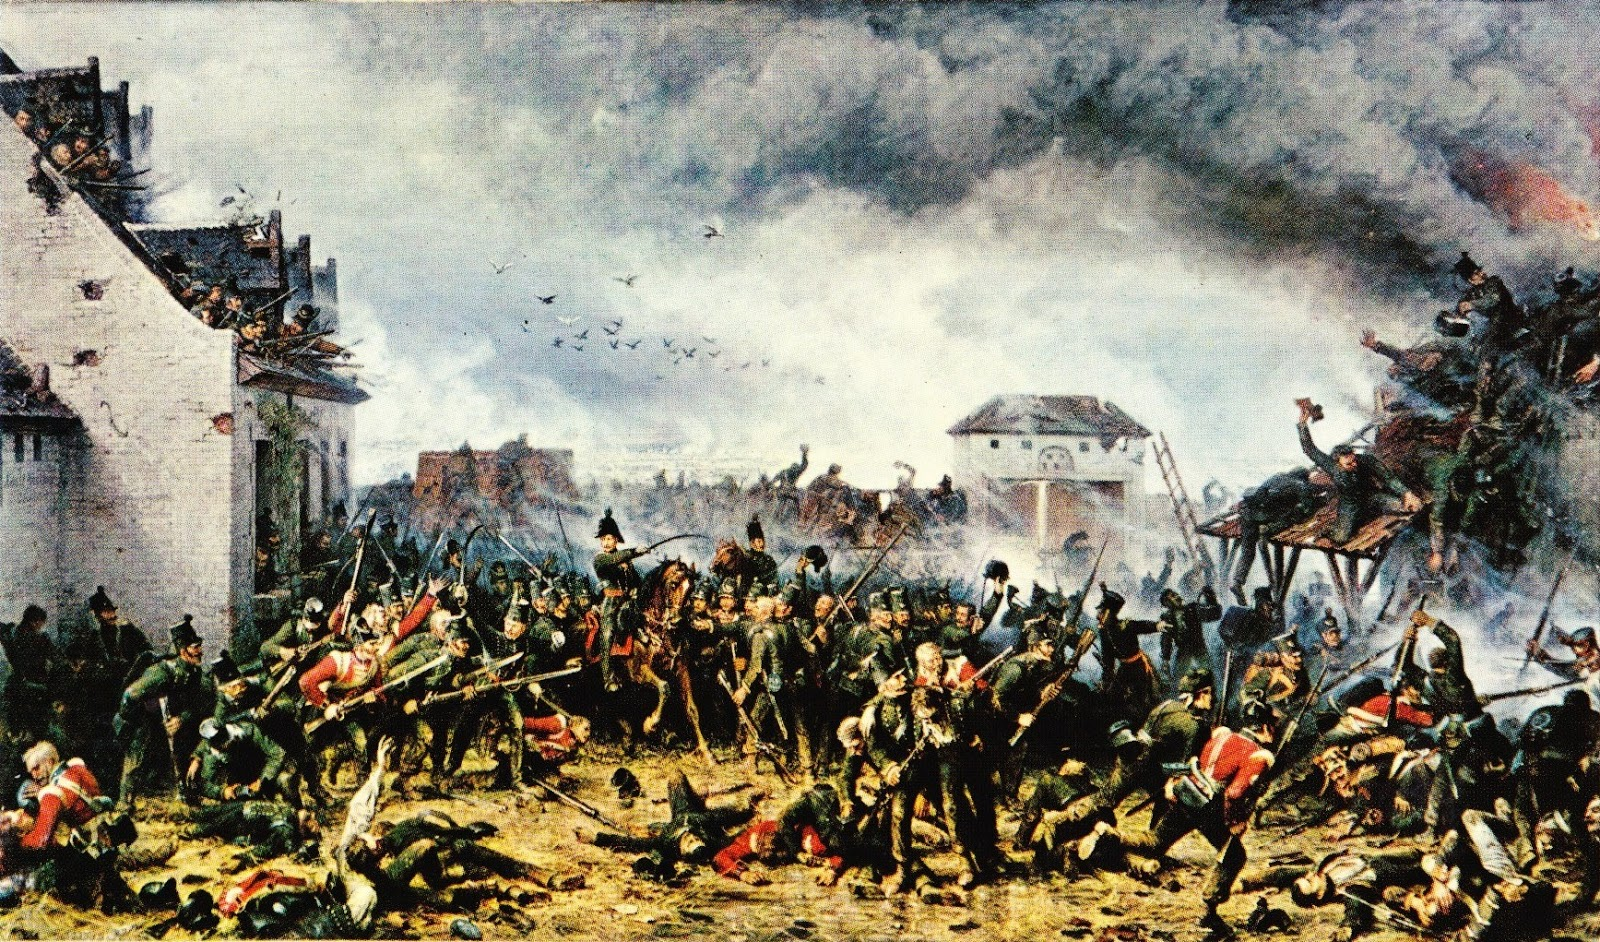 JJ's Wargames: Waterloo 200 - The Bicentenary of the ...